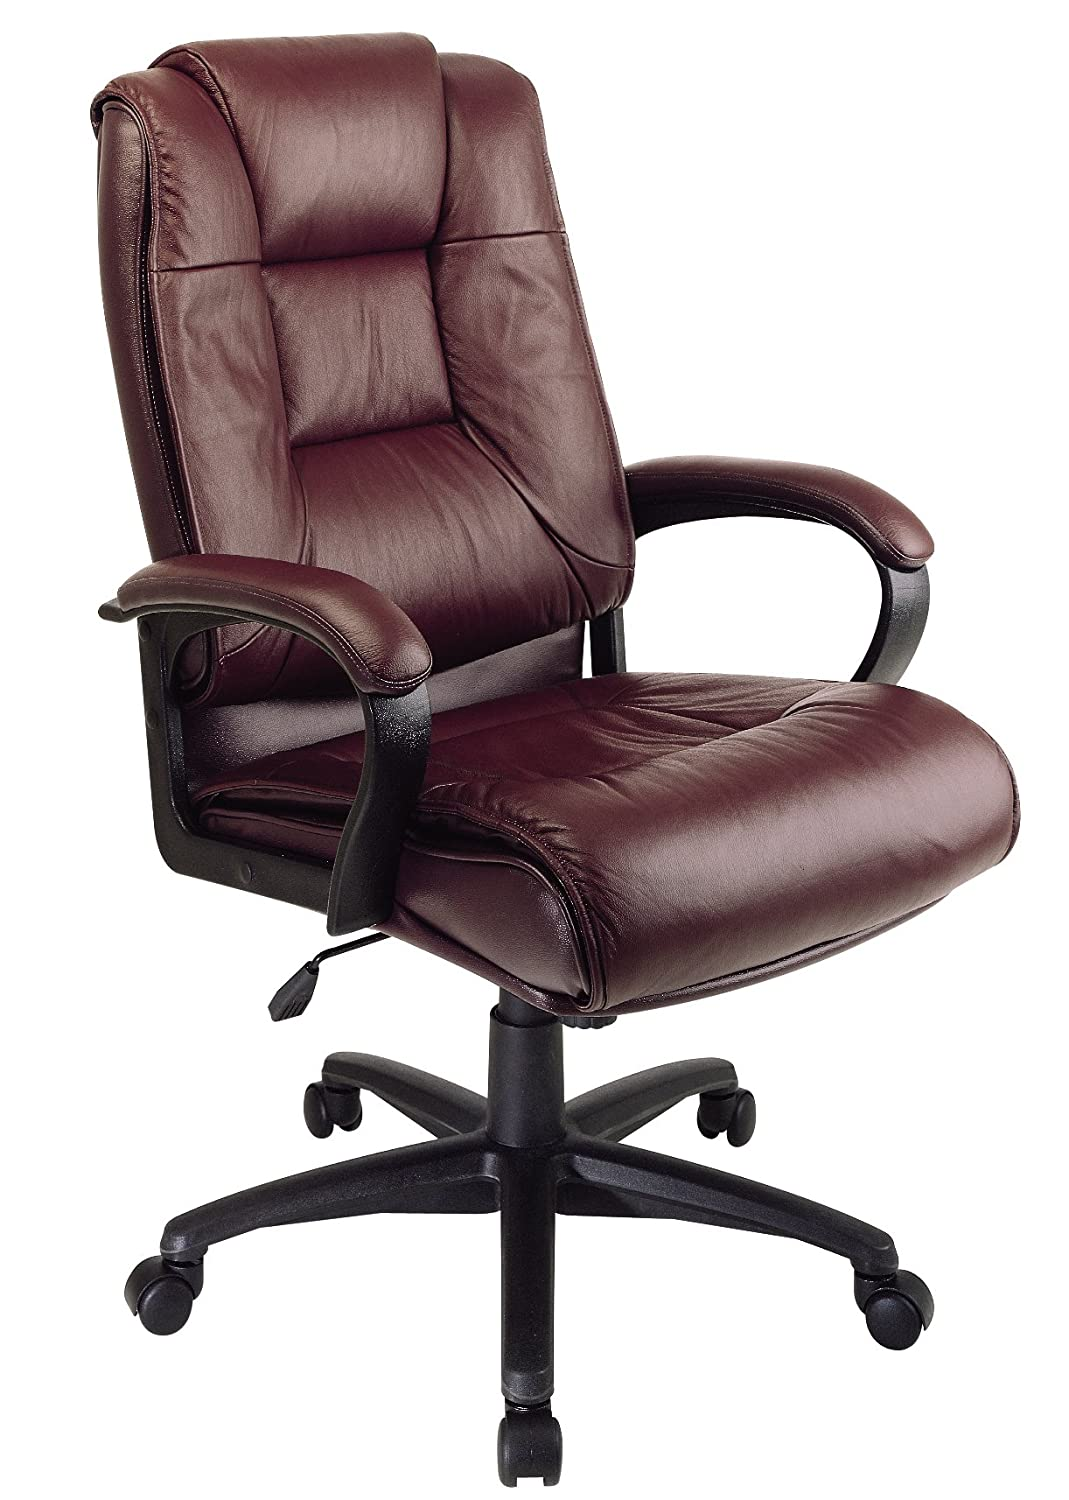 Office Star Executive Chairs Reviewed  Office Chairs For